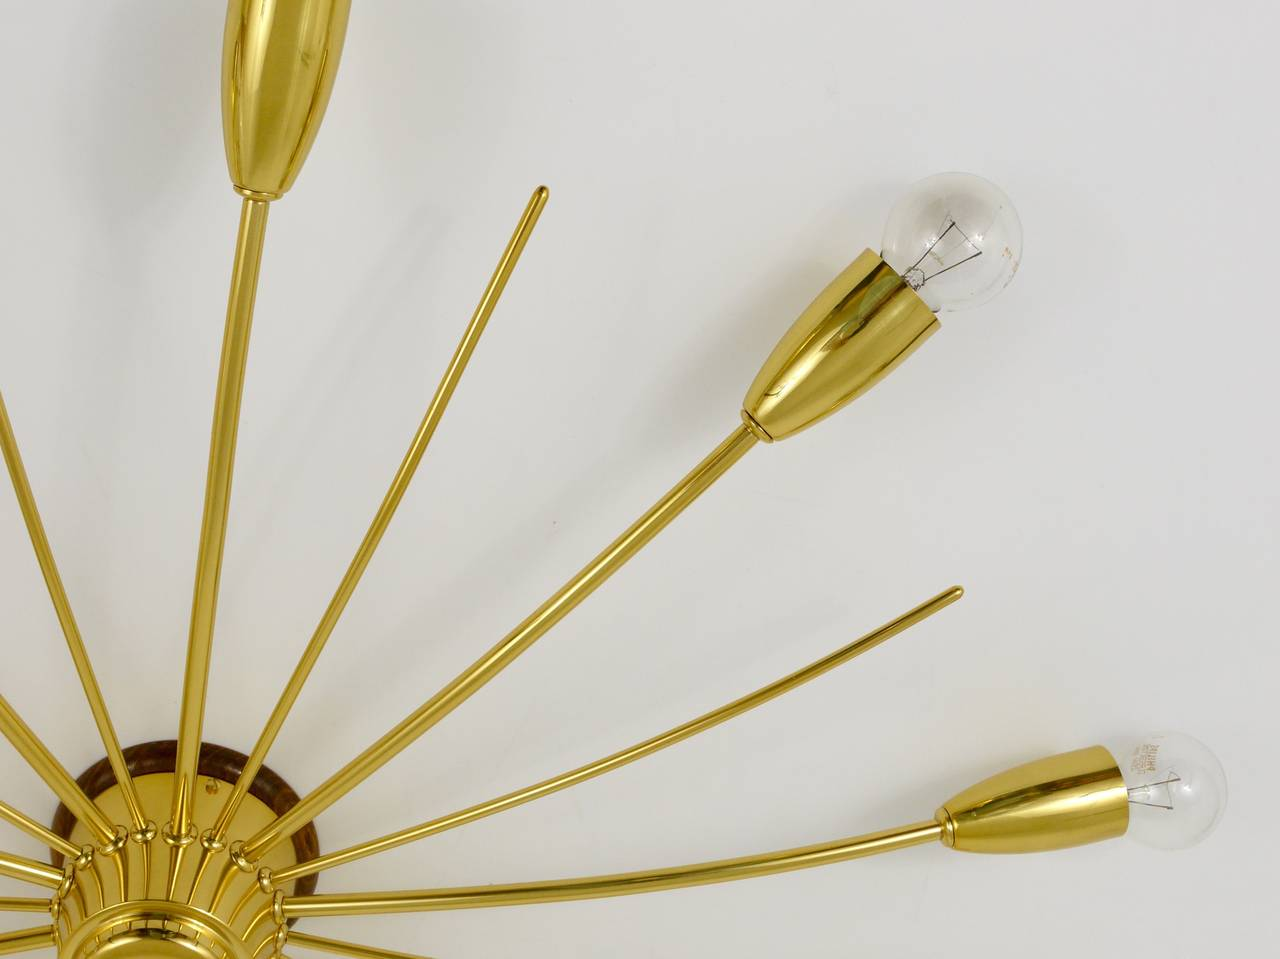 20th Century Kalmar Sonne Sun Shaped Modernist Brass Chandelier Flush Mount, Austria, 1950s For Sale